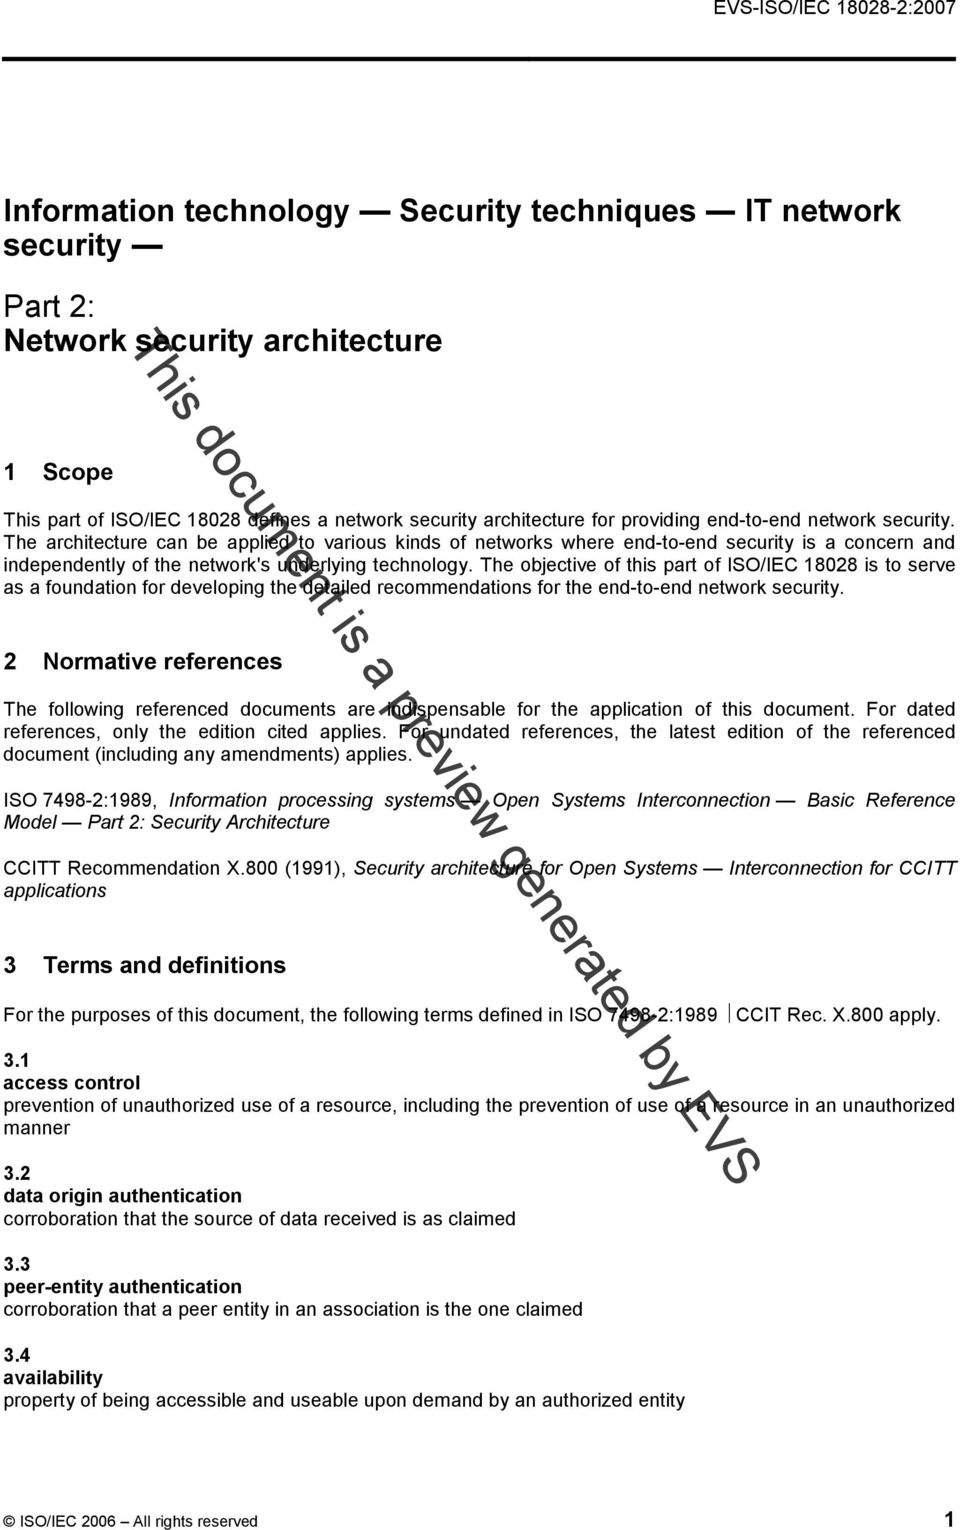 The architecture can be applied to various kinds of networks where end-to-end security is a concern and independently of the network's underlying technology.